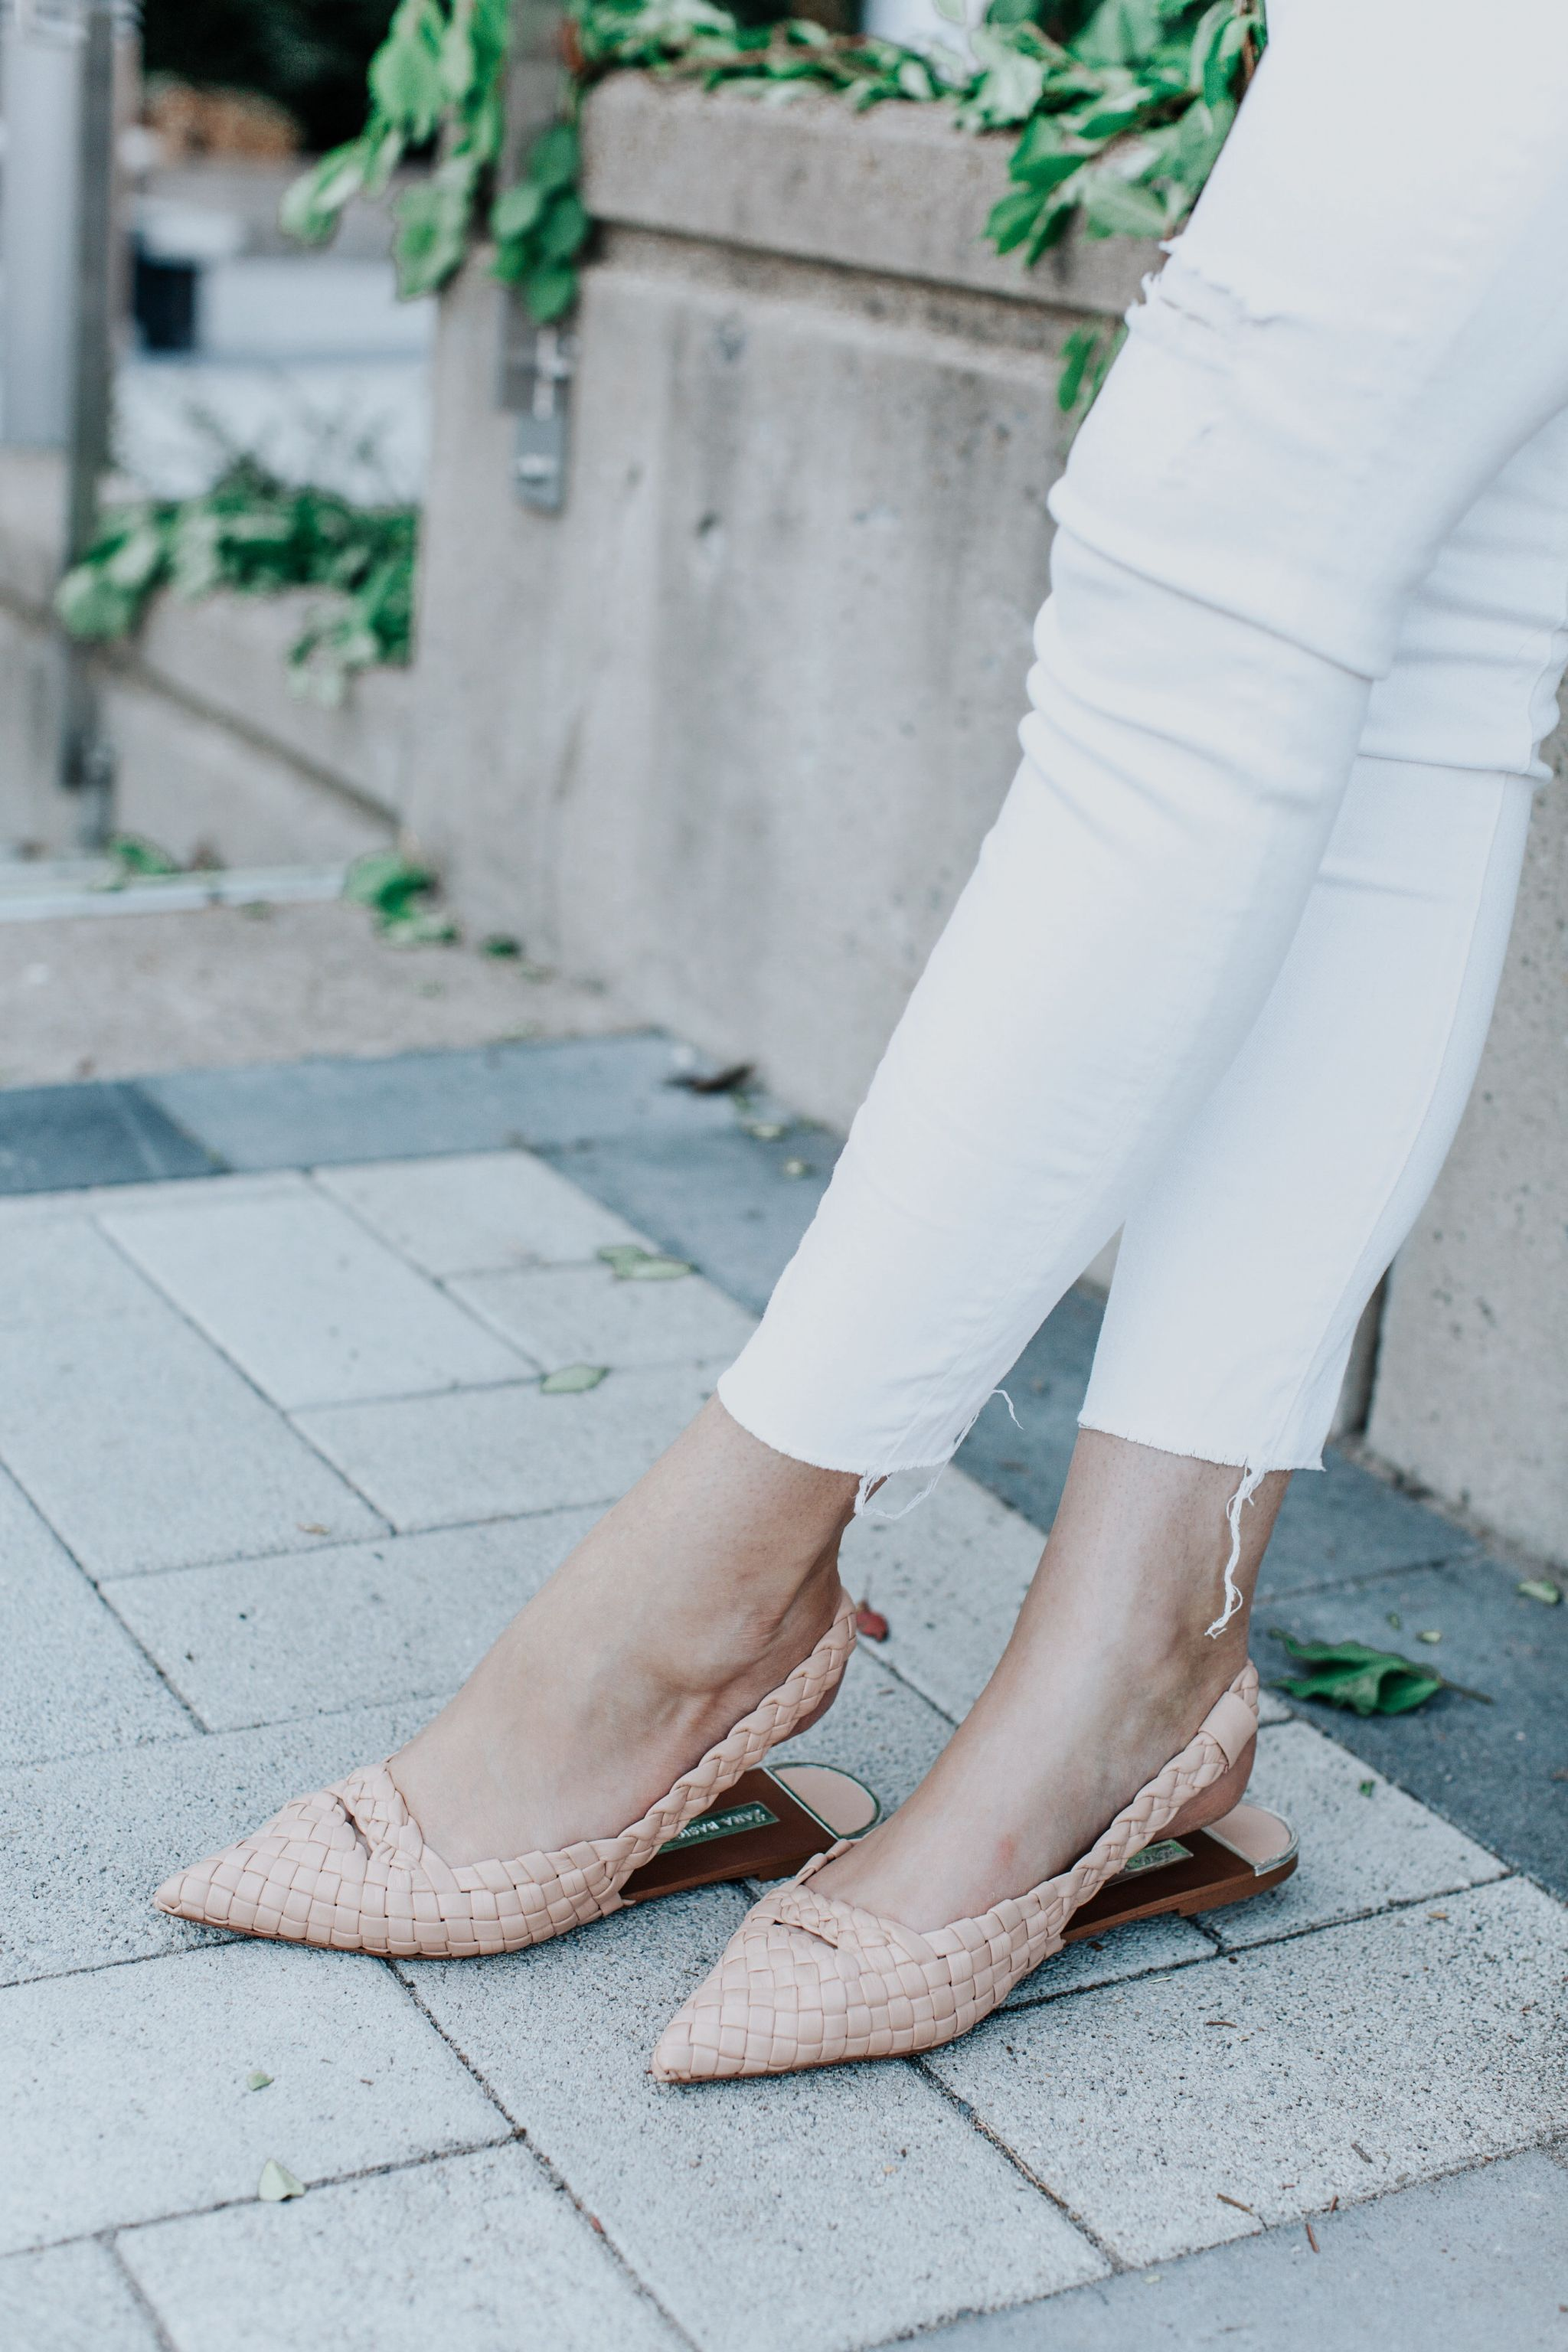 1 person, zara woven flats and white pants